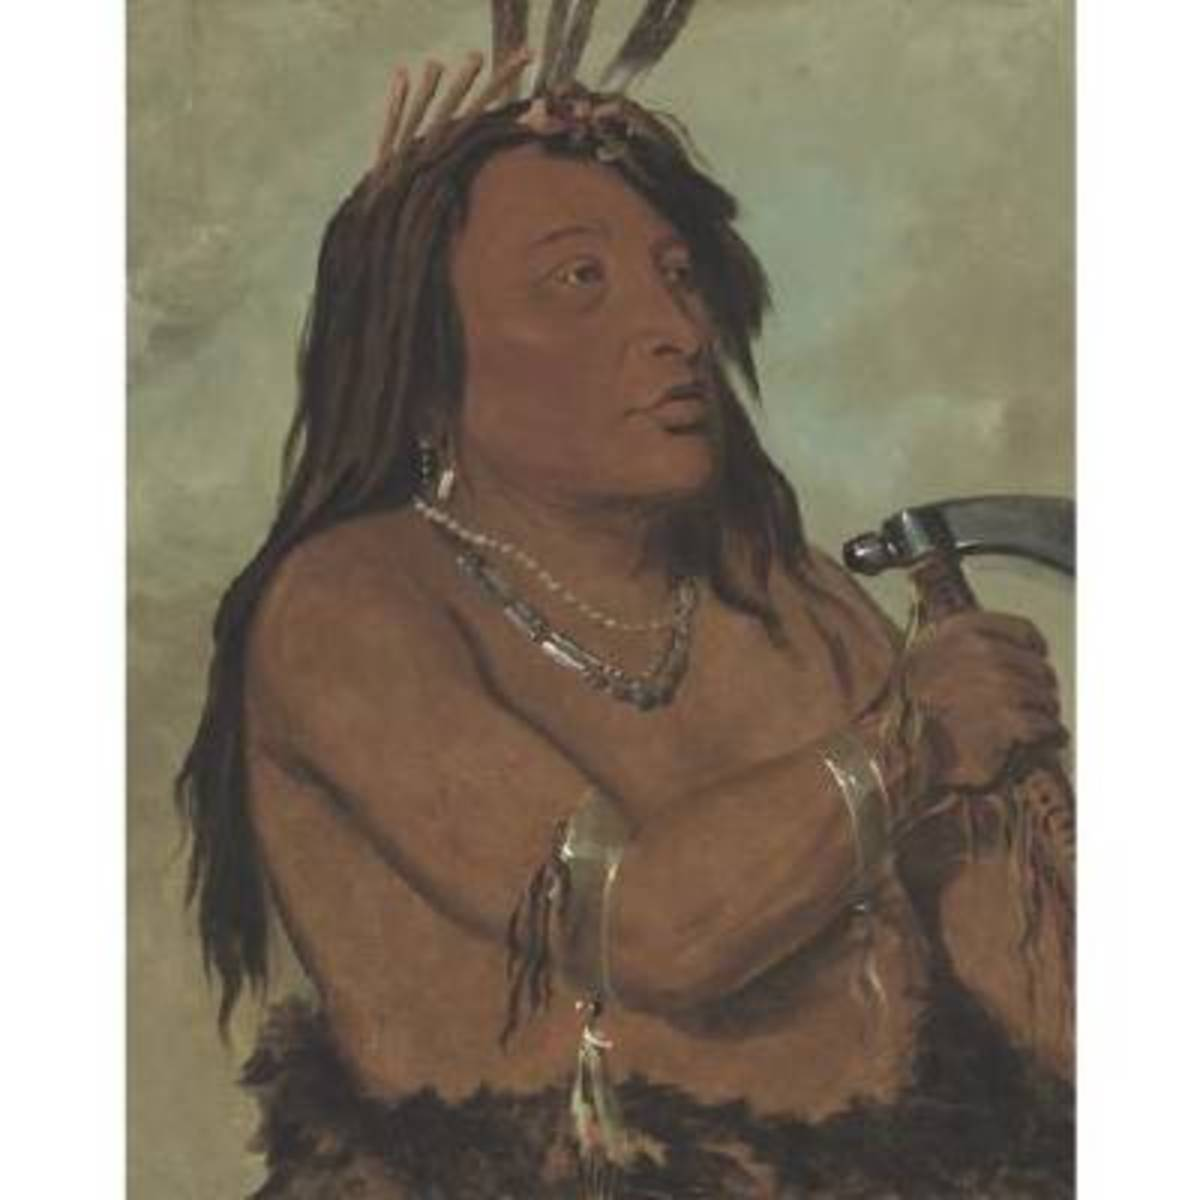 Catlin traveled among tribal groups with greater safety than most other settlers of European descent. This was because the Native Americans valued Catlin's record of their tribal societies.